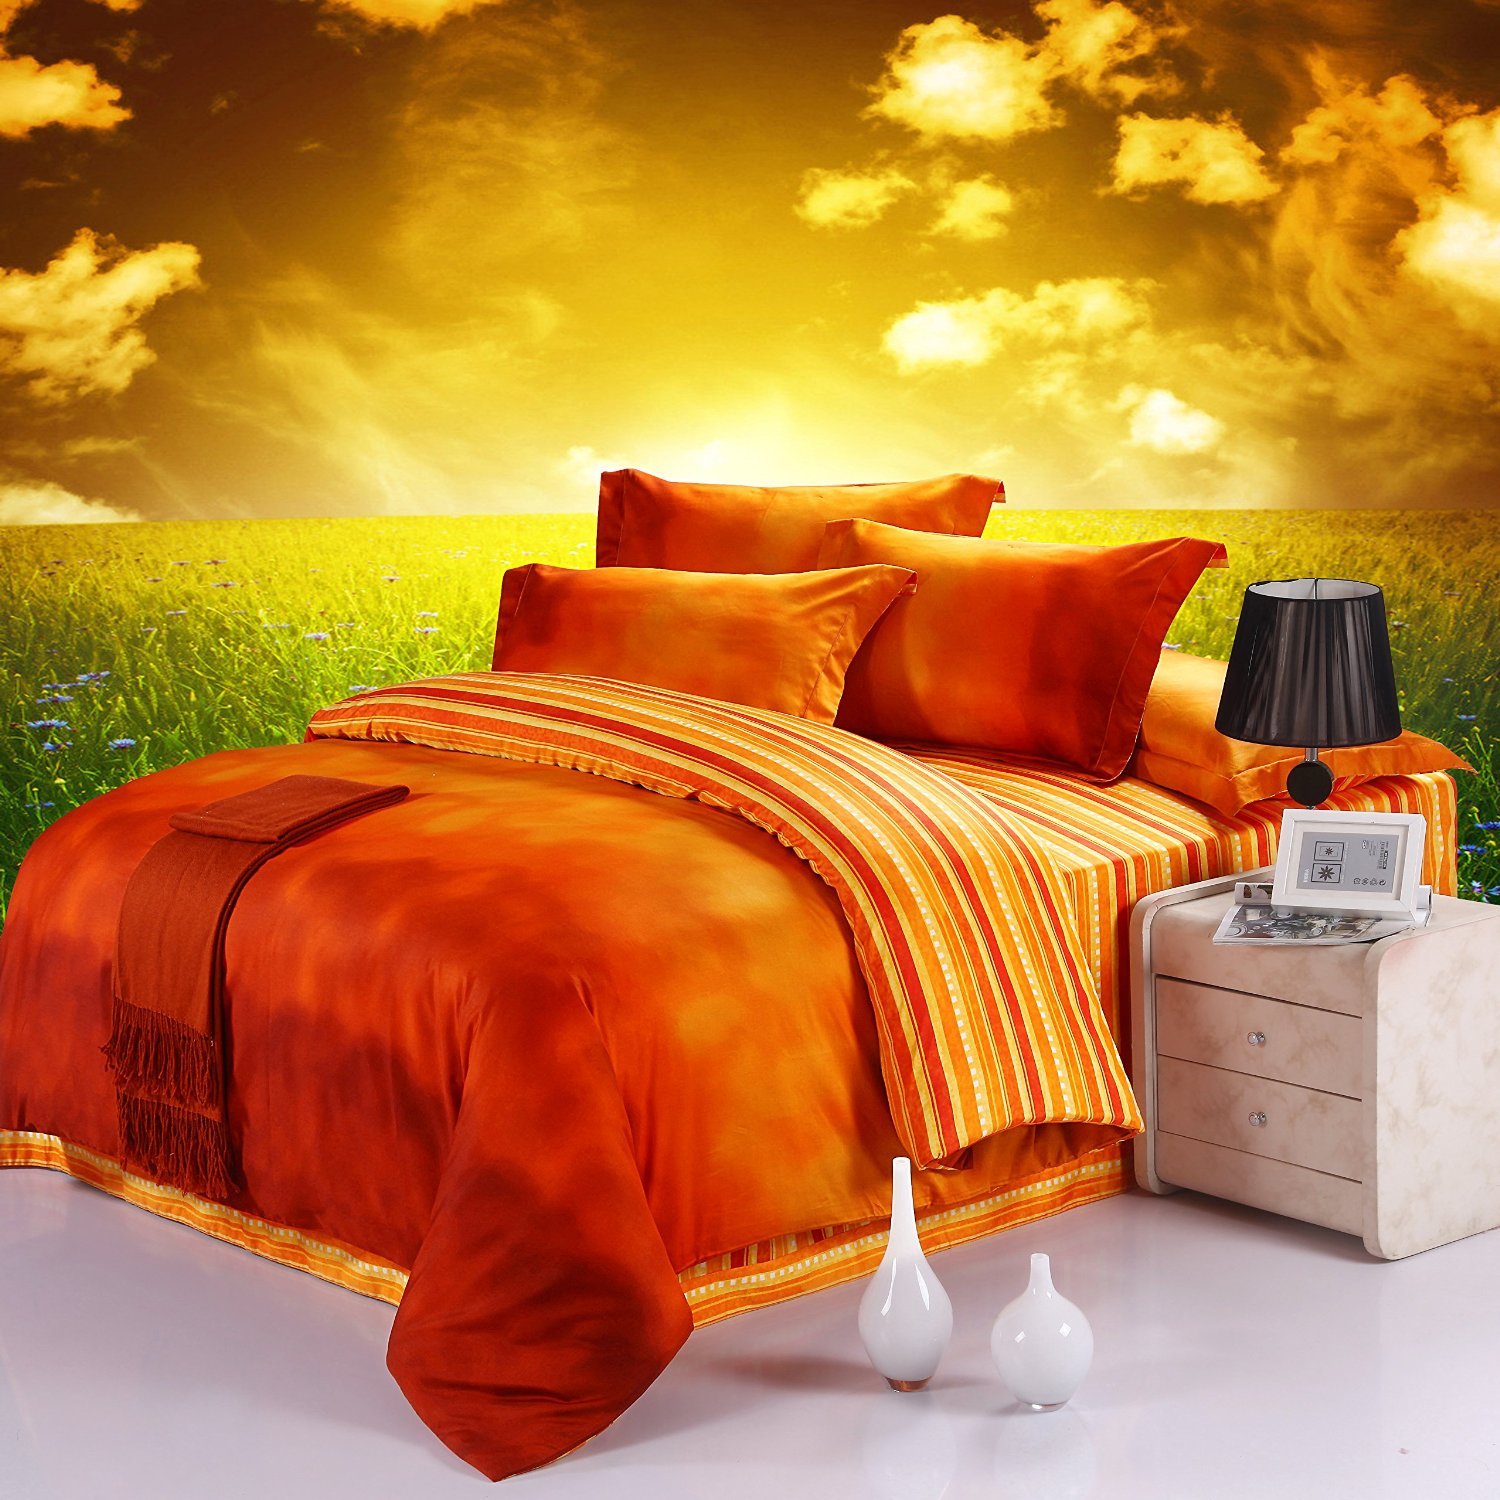 10 Fun Bright Orange Comforters And Bedding Sets